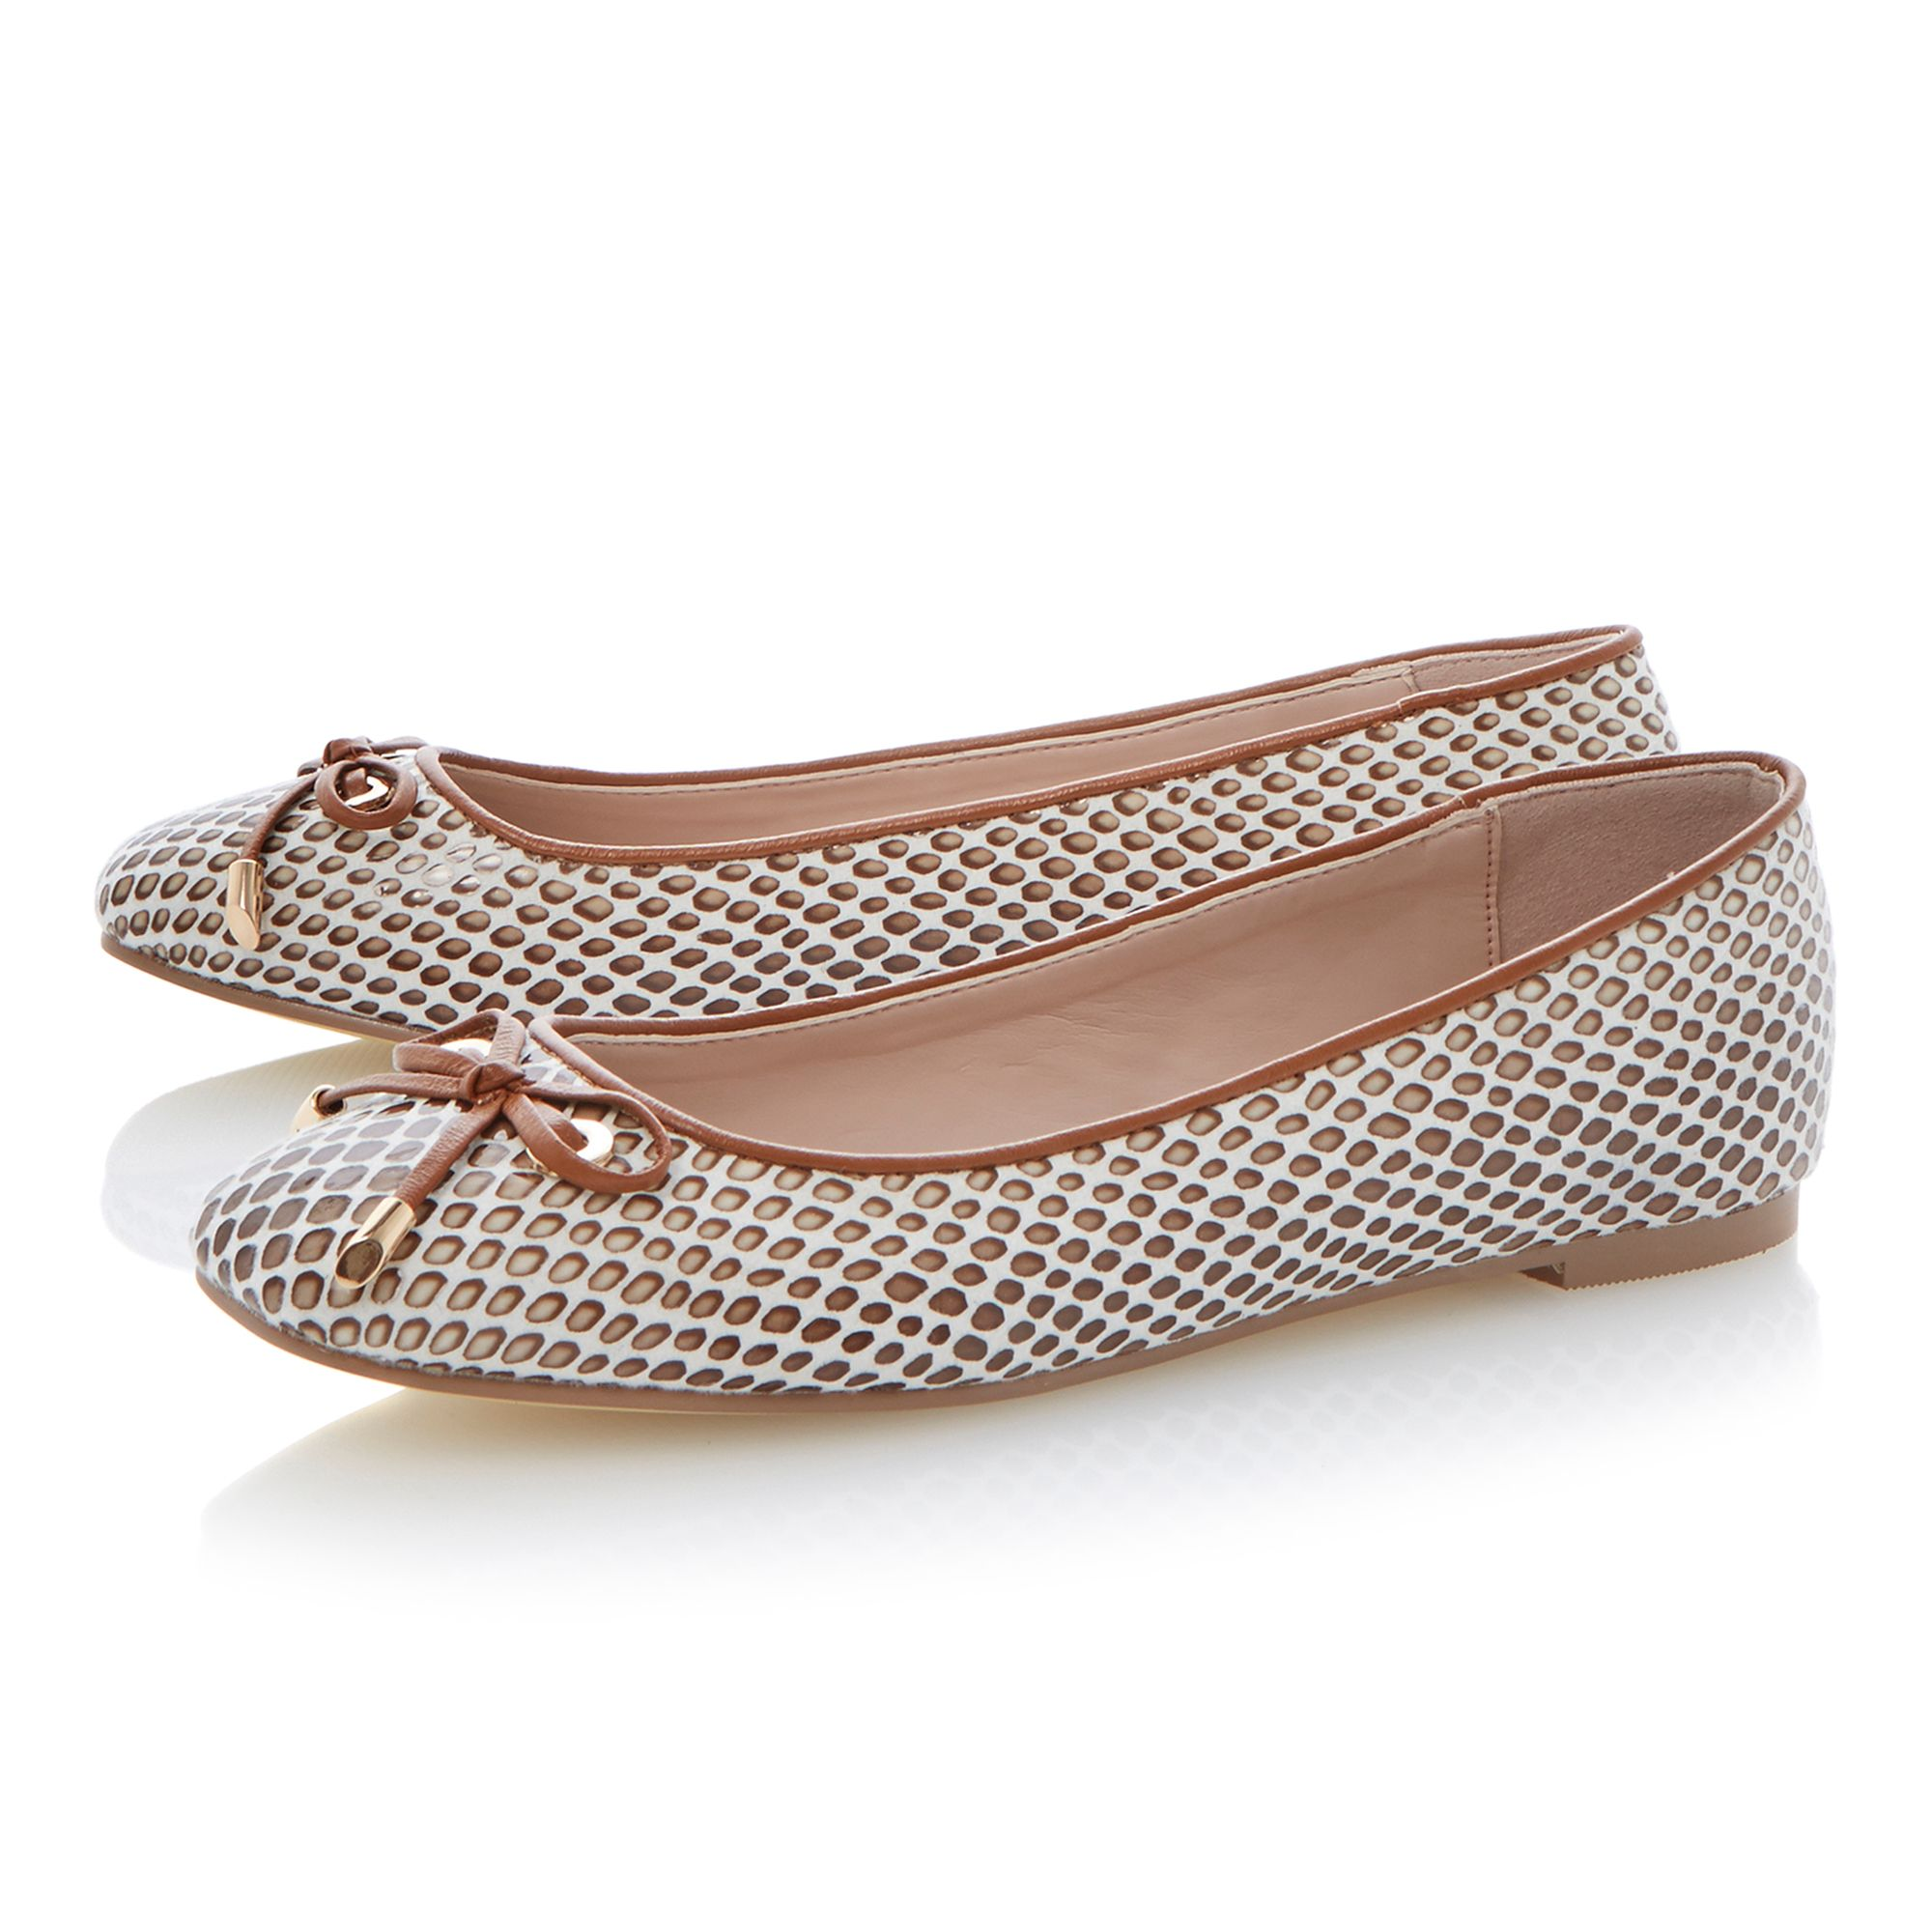 Meanda square toe ballerina shoes